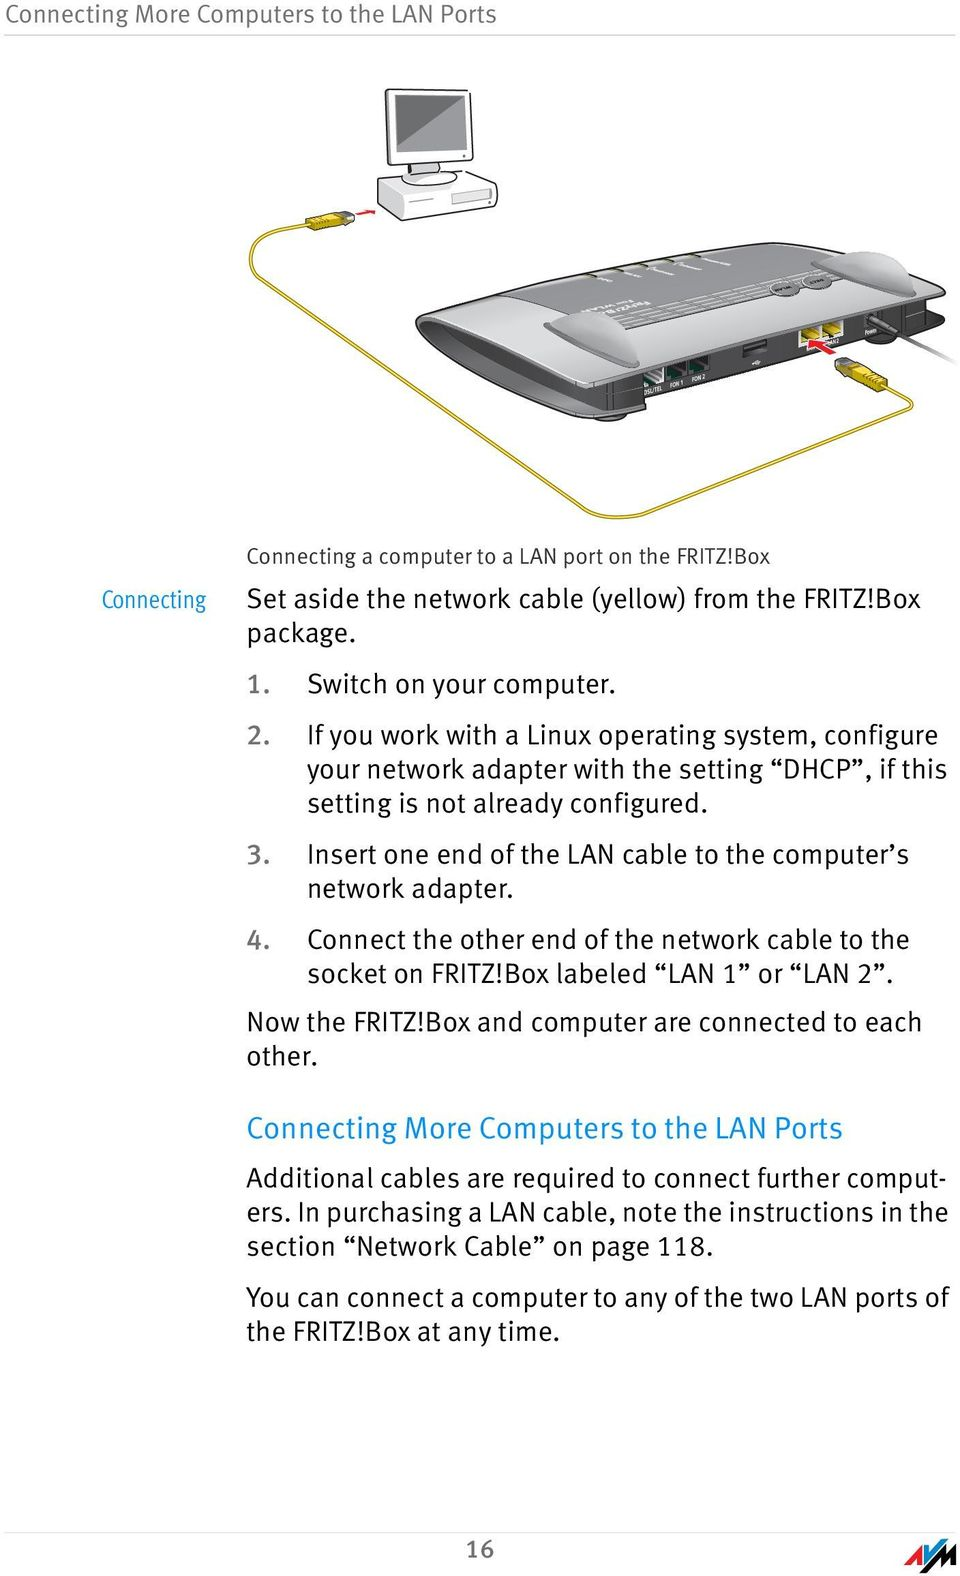 Insert one end of the LAN cable to the computer s network adapter. 4. Connect the other end of the network cable to the socket on FRITZ!Box labeled LAN 1 or LAN 2. Now the FRITZ!